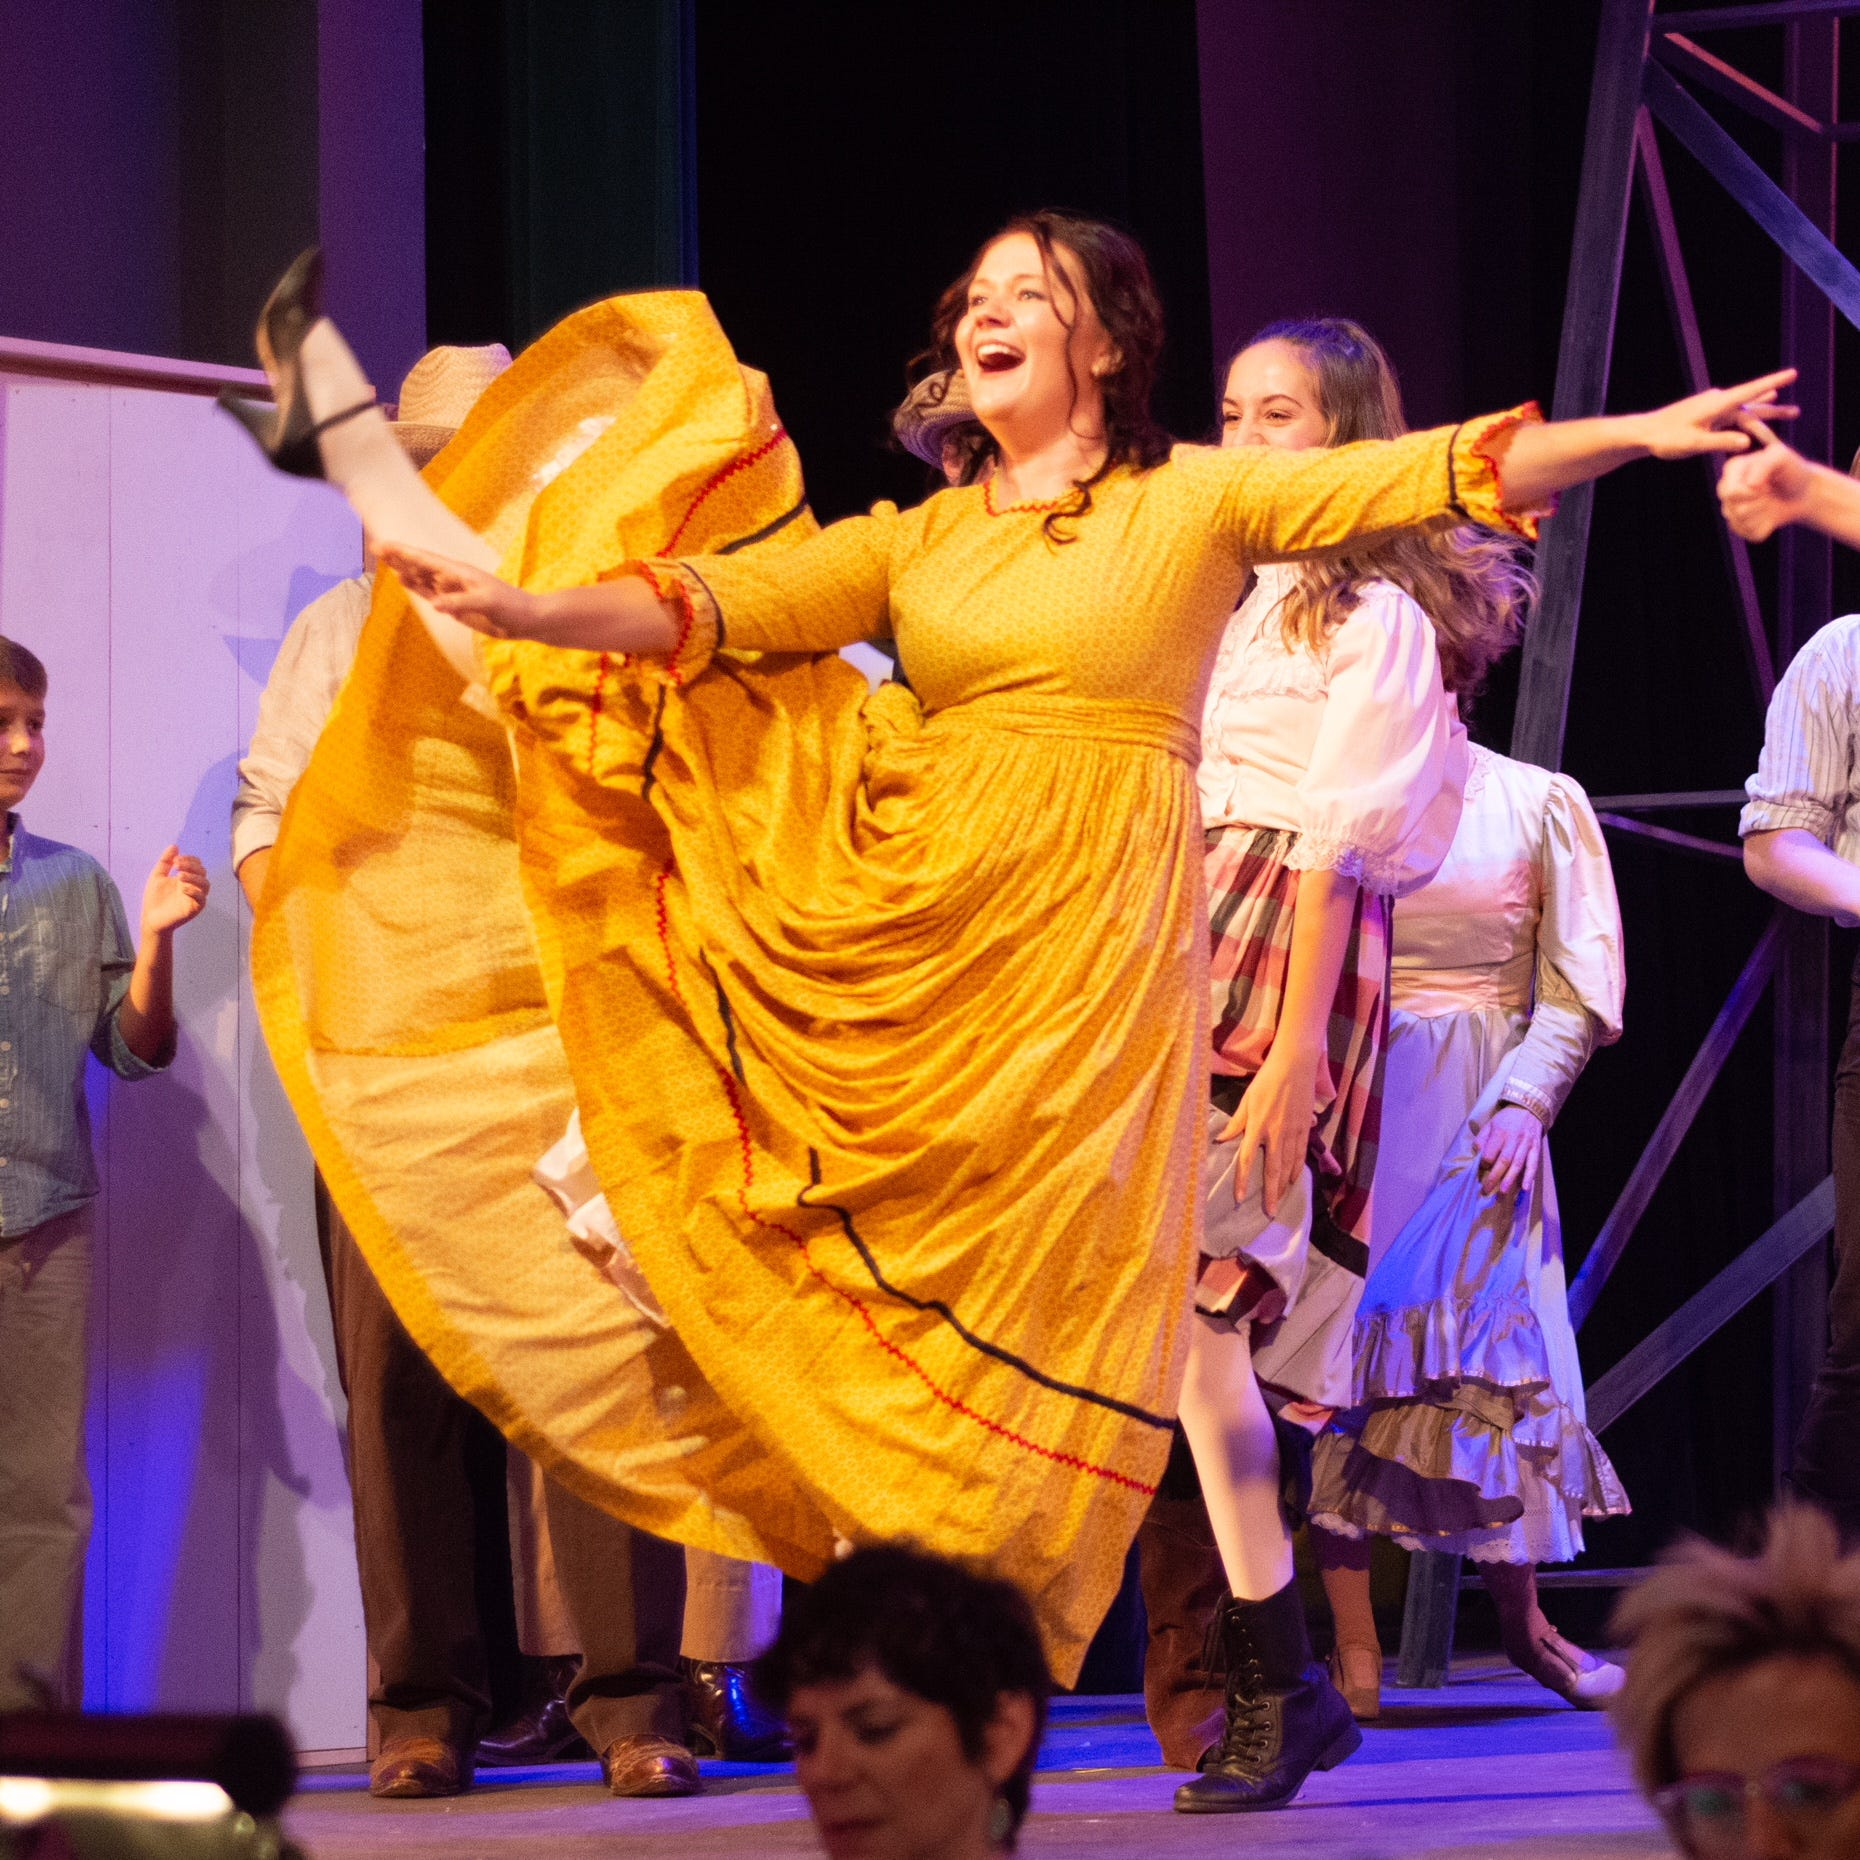 Simi Valley's cast of Oklahoma! captures spirit of songs, simplicity of farmers' lives